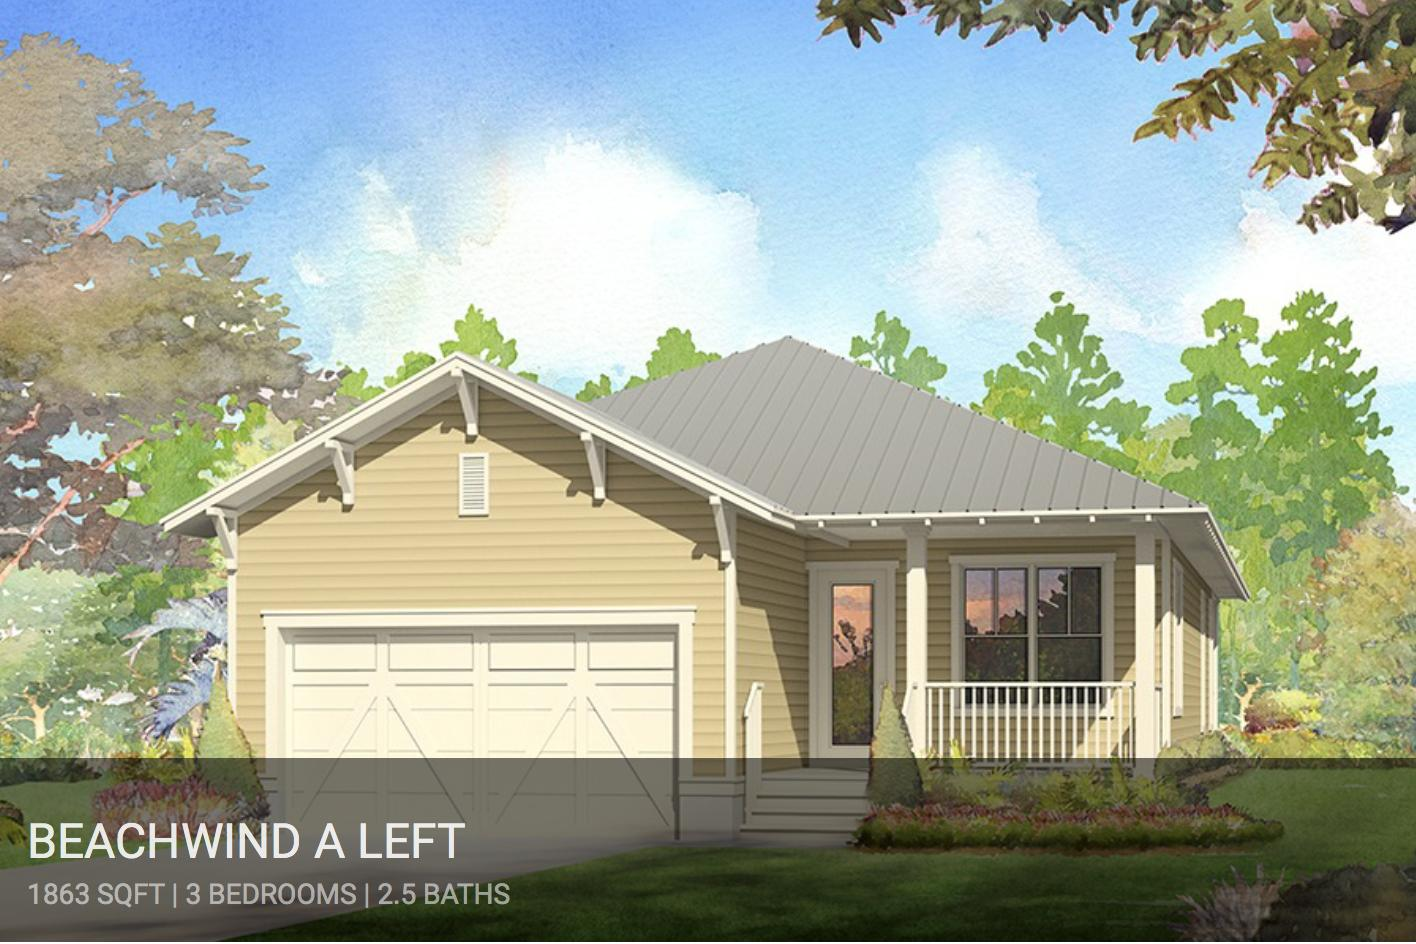 Ask about our $15,000 incentive for Cottage inventory that closes in 2019. Certain restrictions apply.  Lowest priced home in NatureWalk.  The Beachwind plan with 2 car garage home SOUTH of 98. Home is starting soon- still time to choose finishes!  Will be complete this Fall! Cute cottage with gorgeous views of pond/ preserve.  Windows line the entire living room to showcase the views! Living room will have white beams and ship lap running through the main areas.  Spacious master suite with trey ceiling and  bath with double vanity and walk in shower. Walk in closet with plenty of room for two! Our standards are other builders upgrades- shaker cabinets, wood floors throughout, tankless hot water heater, built in appliances with gas cooktop , and much more! Homesite is directly across from access to Point Washington State Forest where you will find miles and miles of trails to hike or bike.  NatureWalk at Seagrove has become the resort style community go to for many! With 2 pools (including a heated lap pool), kiddie pool, fire pits, grill, hot tub AND golf cart shuttle to the beach. Biking distance to Seaside & Watercolor.